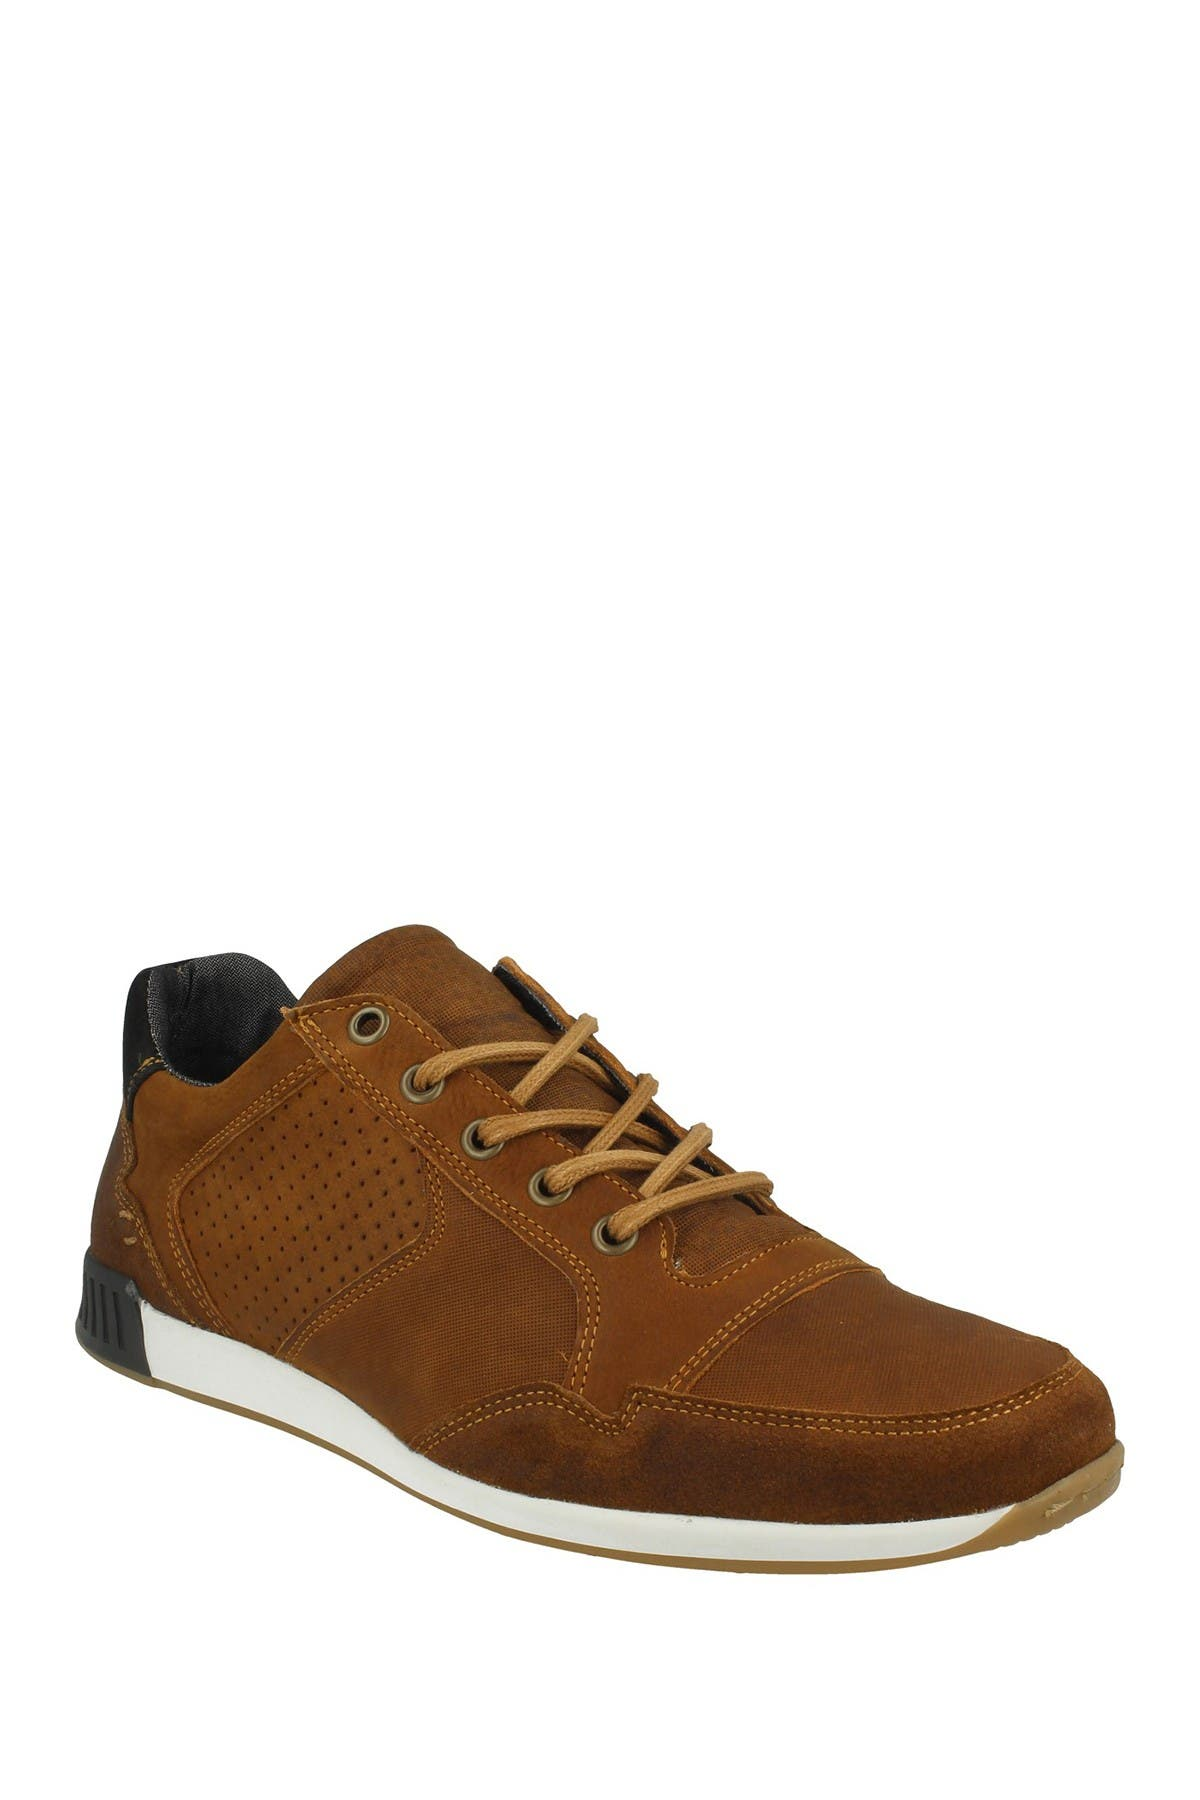 Image of Bullboxer Perforated Leather Sporty Sneaker